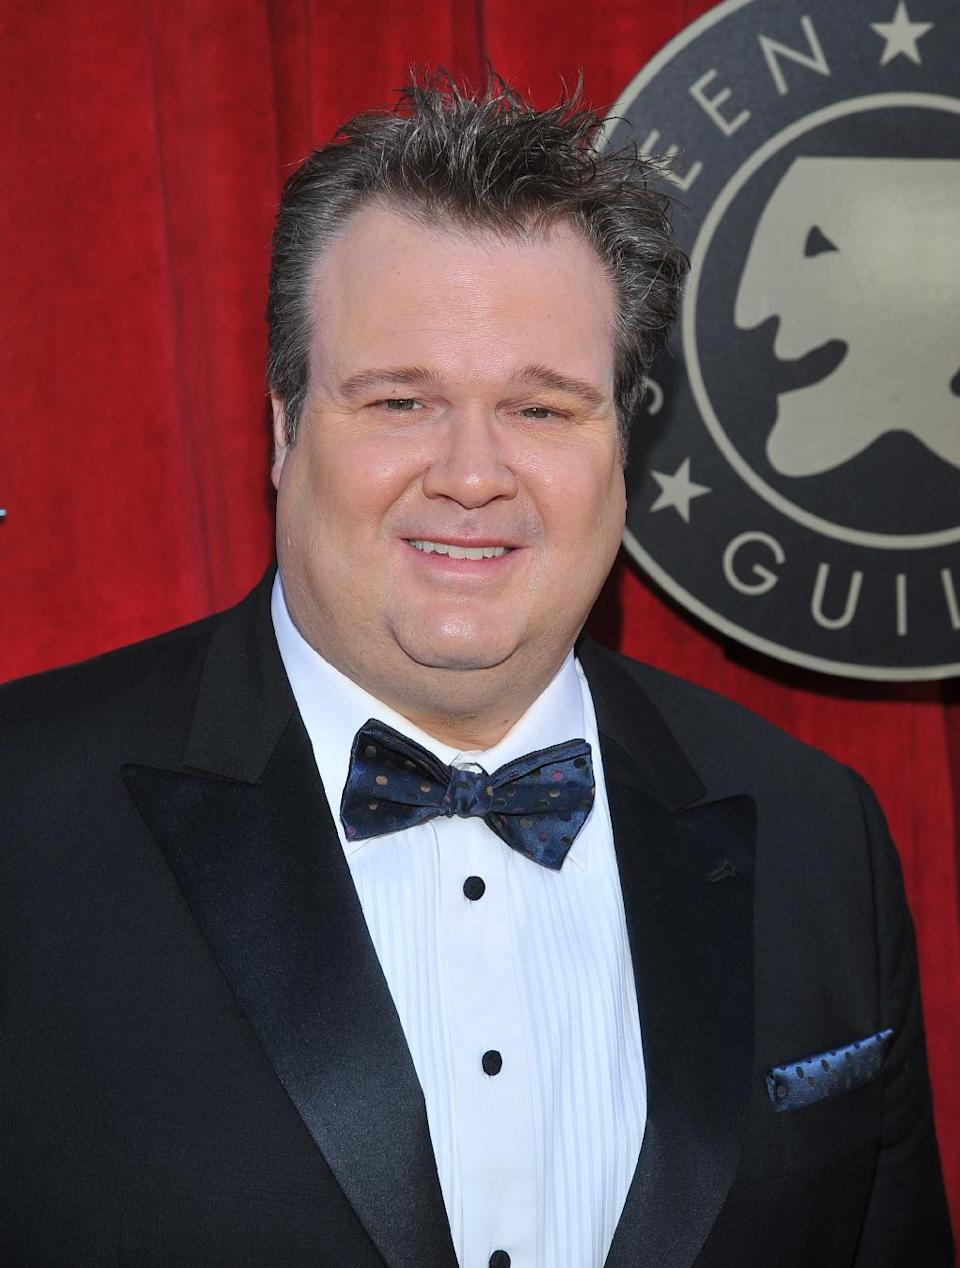 FILE - In this Jan. 29, 2012 file photo, Eric Stonestreet arrives on the red carpet at the 18th Annual Screen Actors Guild Awards in Los Angeles. Five stars of the hit ABC series sued 20th Century Fox Television on Tuesday July 24, 2012, claiming their contracts with the studio are illegal under California law and should be invalidated. (AP Photo/Vince Bucci, File)